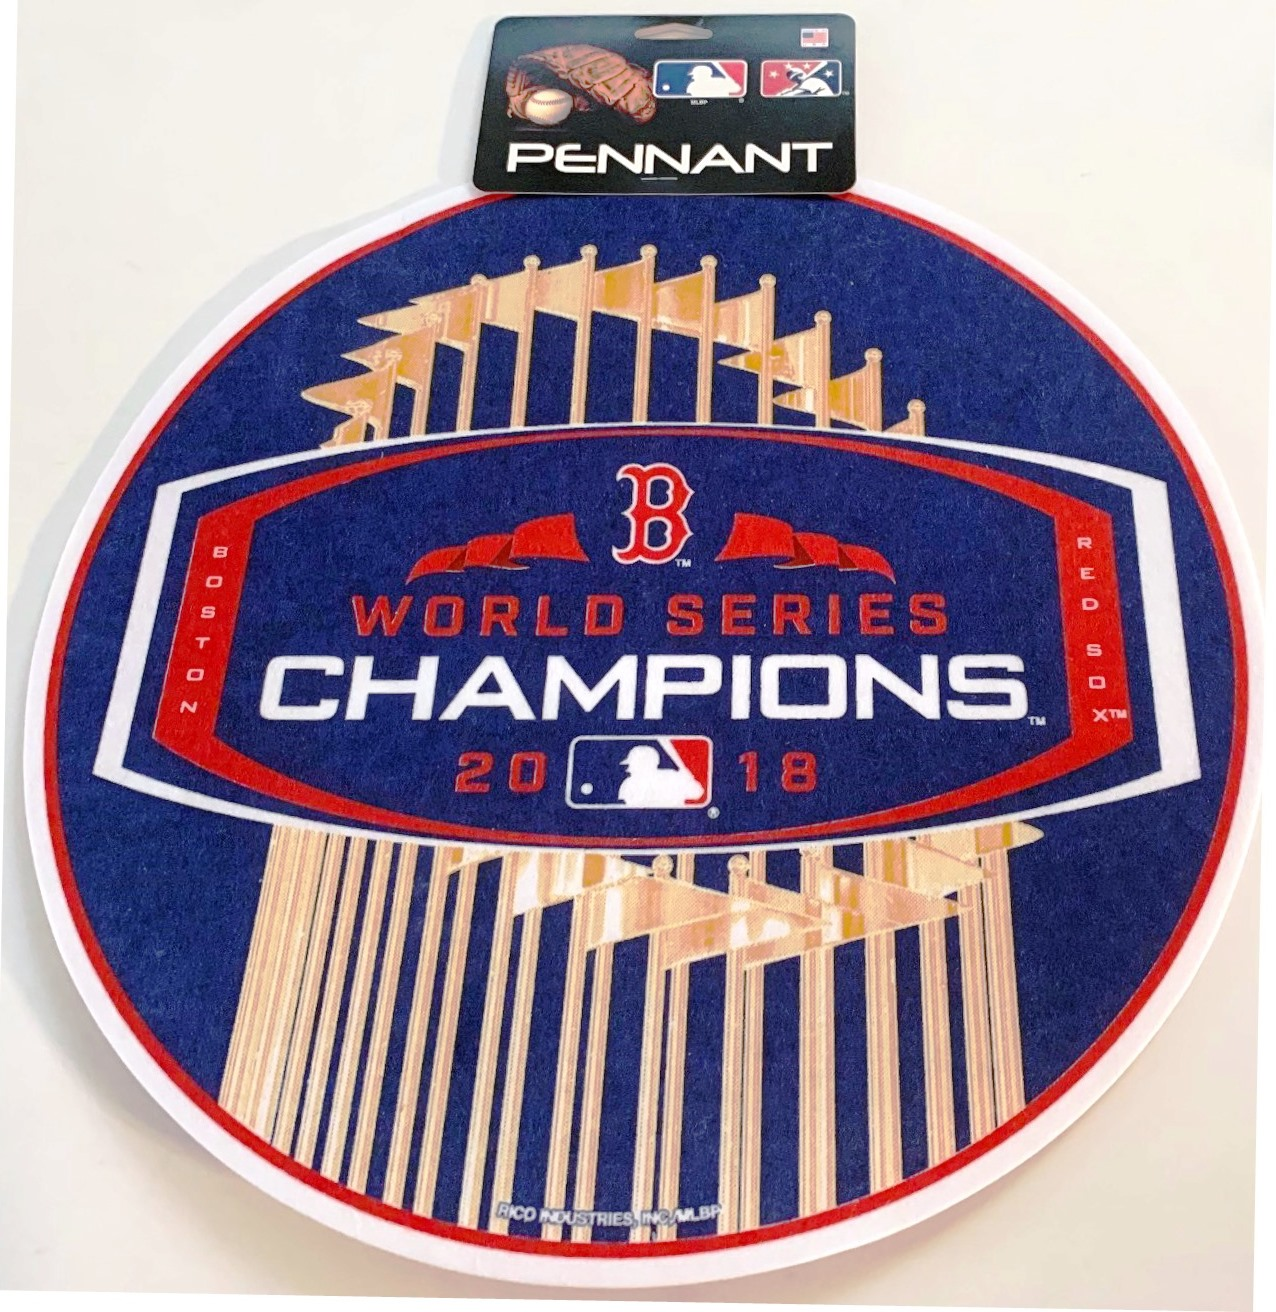 Boston RED SOX 2018 World Series Champs Pennant